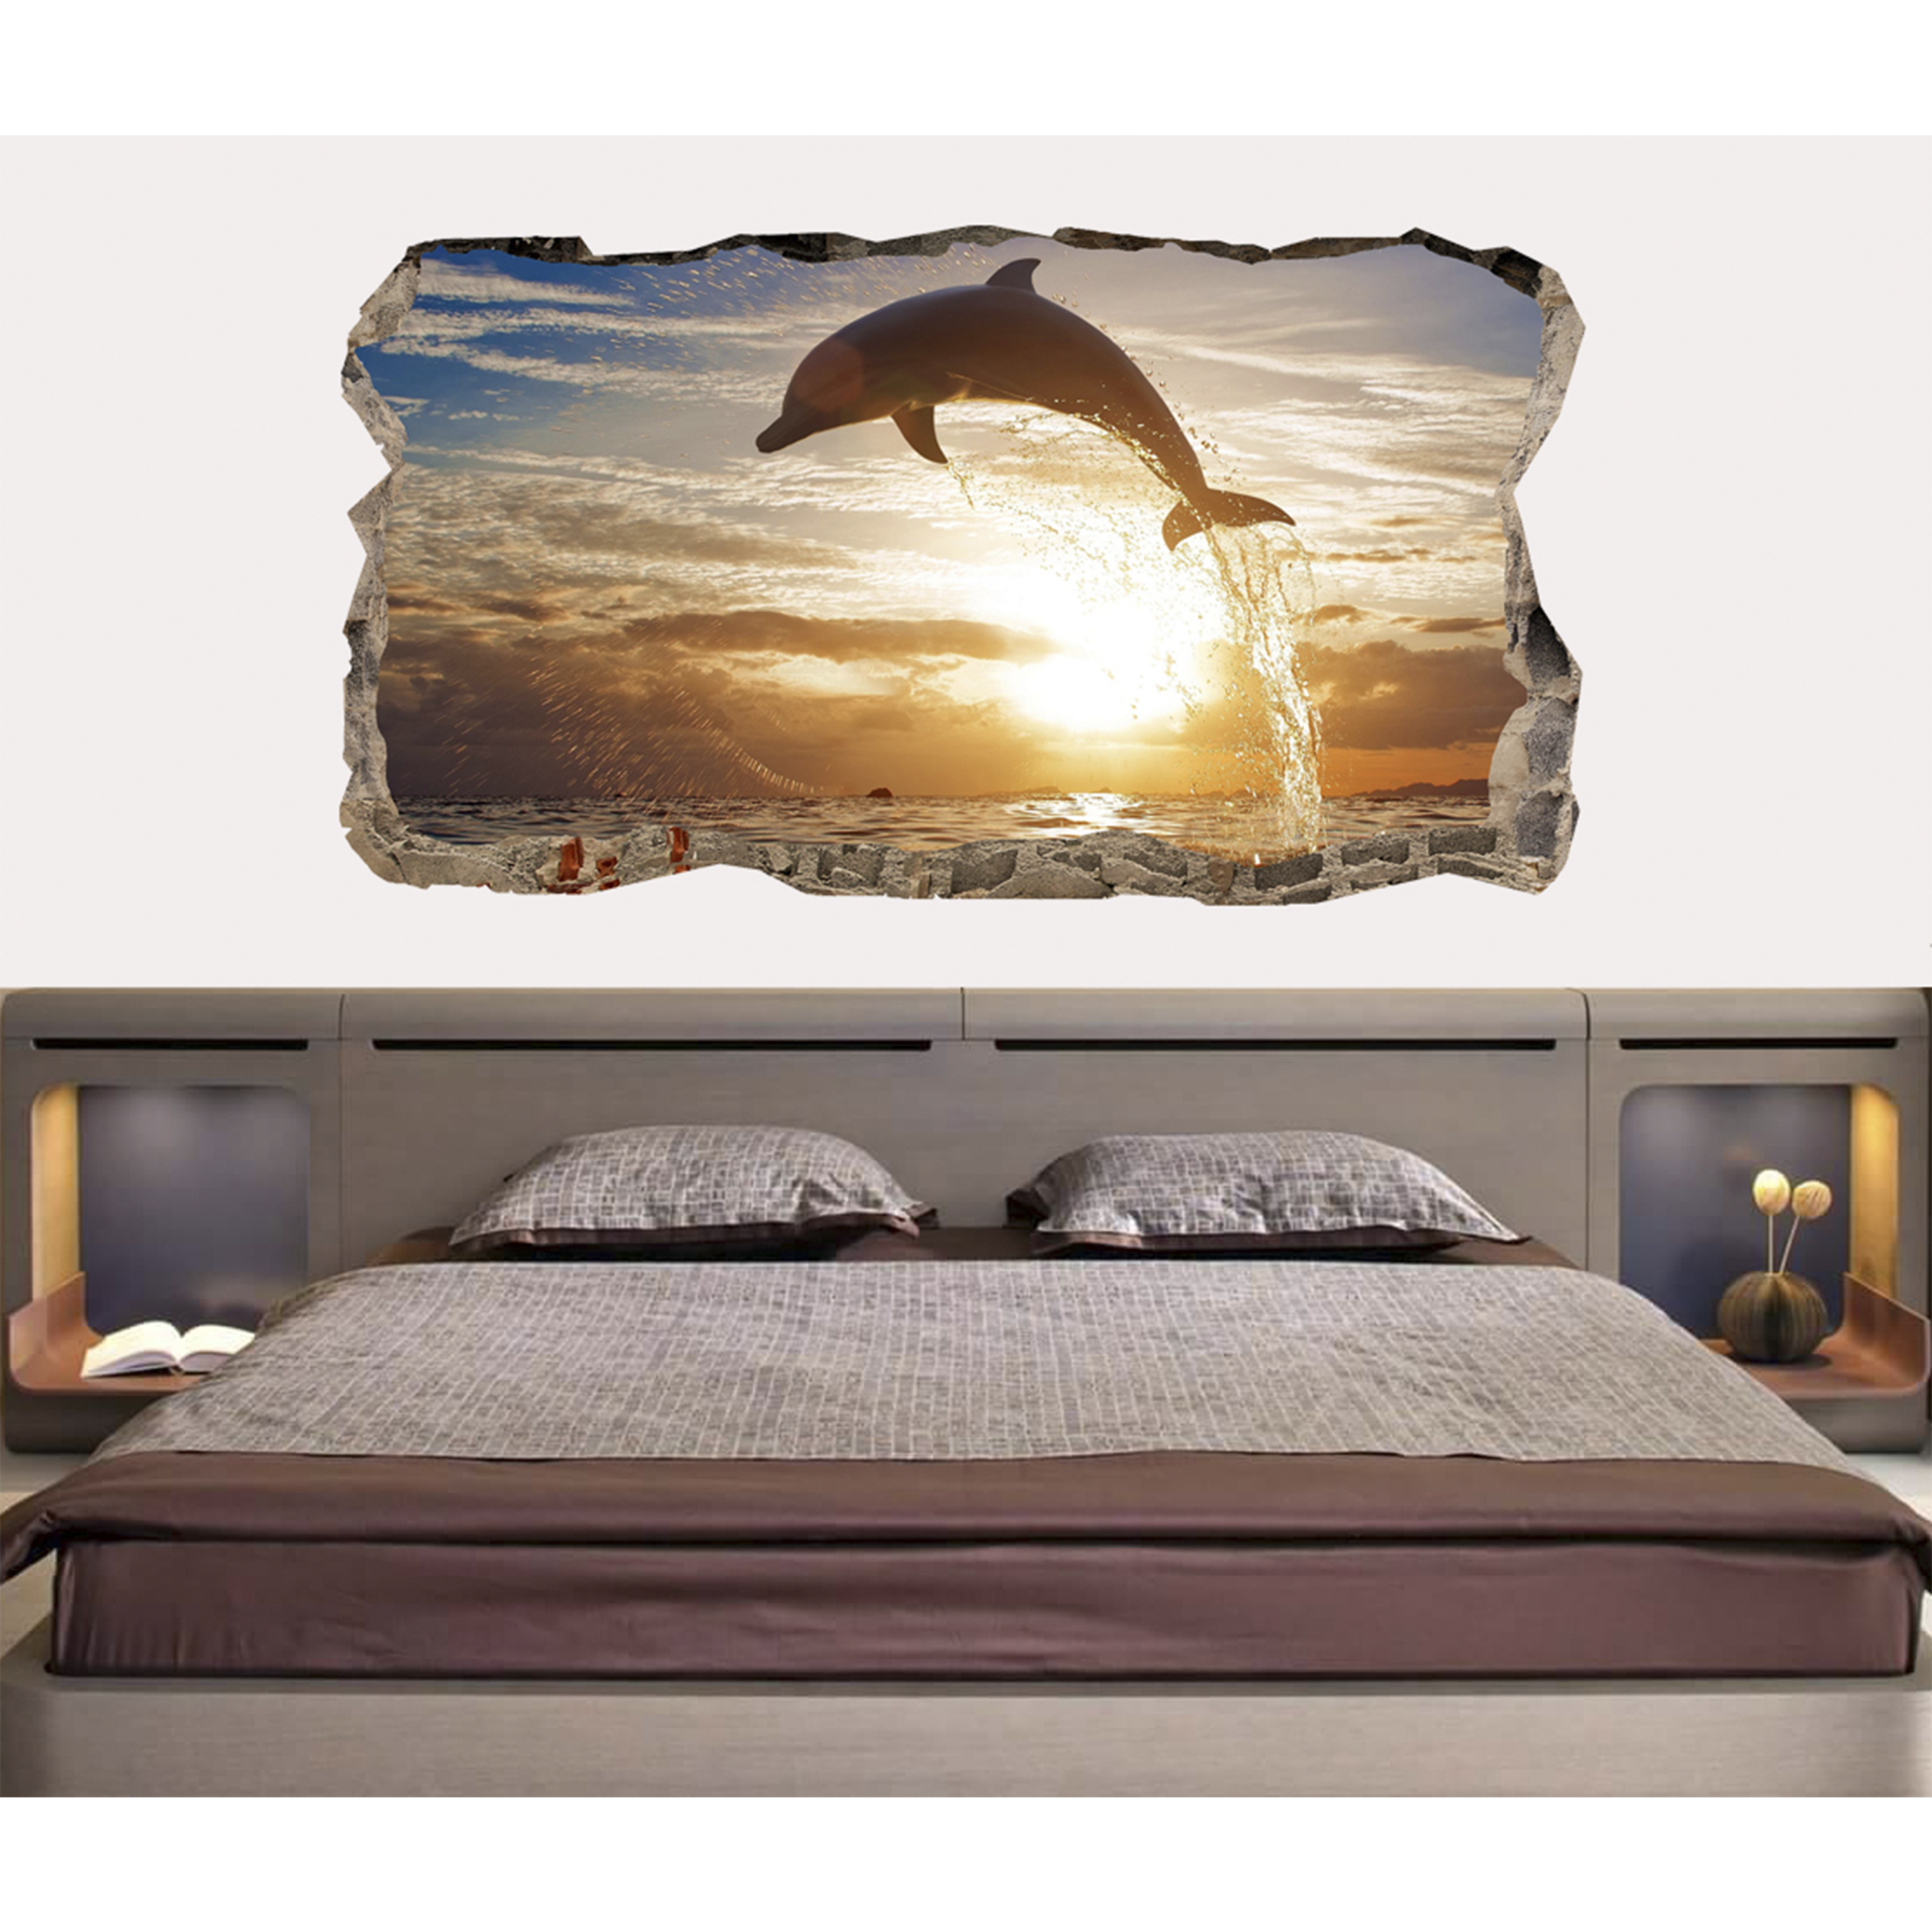 Startonight 3D Mural Wall Art Photo Decor Dolphin Amazing Dual View Surprise Wall Mural Wallpaper for Bedroom Beach Wall Paper Art Gift Large 47.24 '' By 86.61 ''